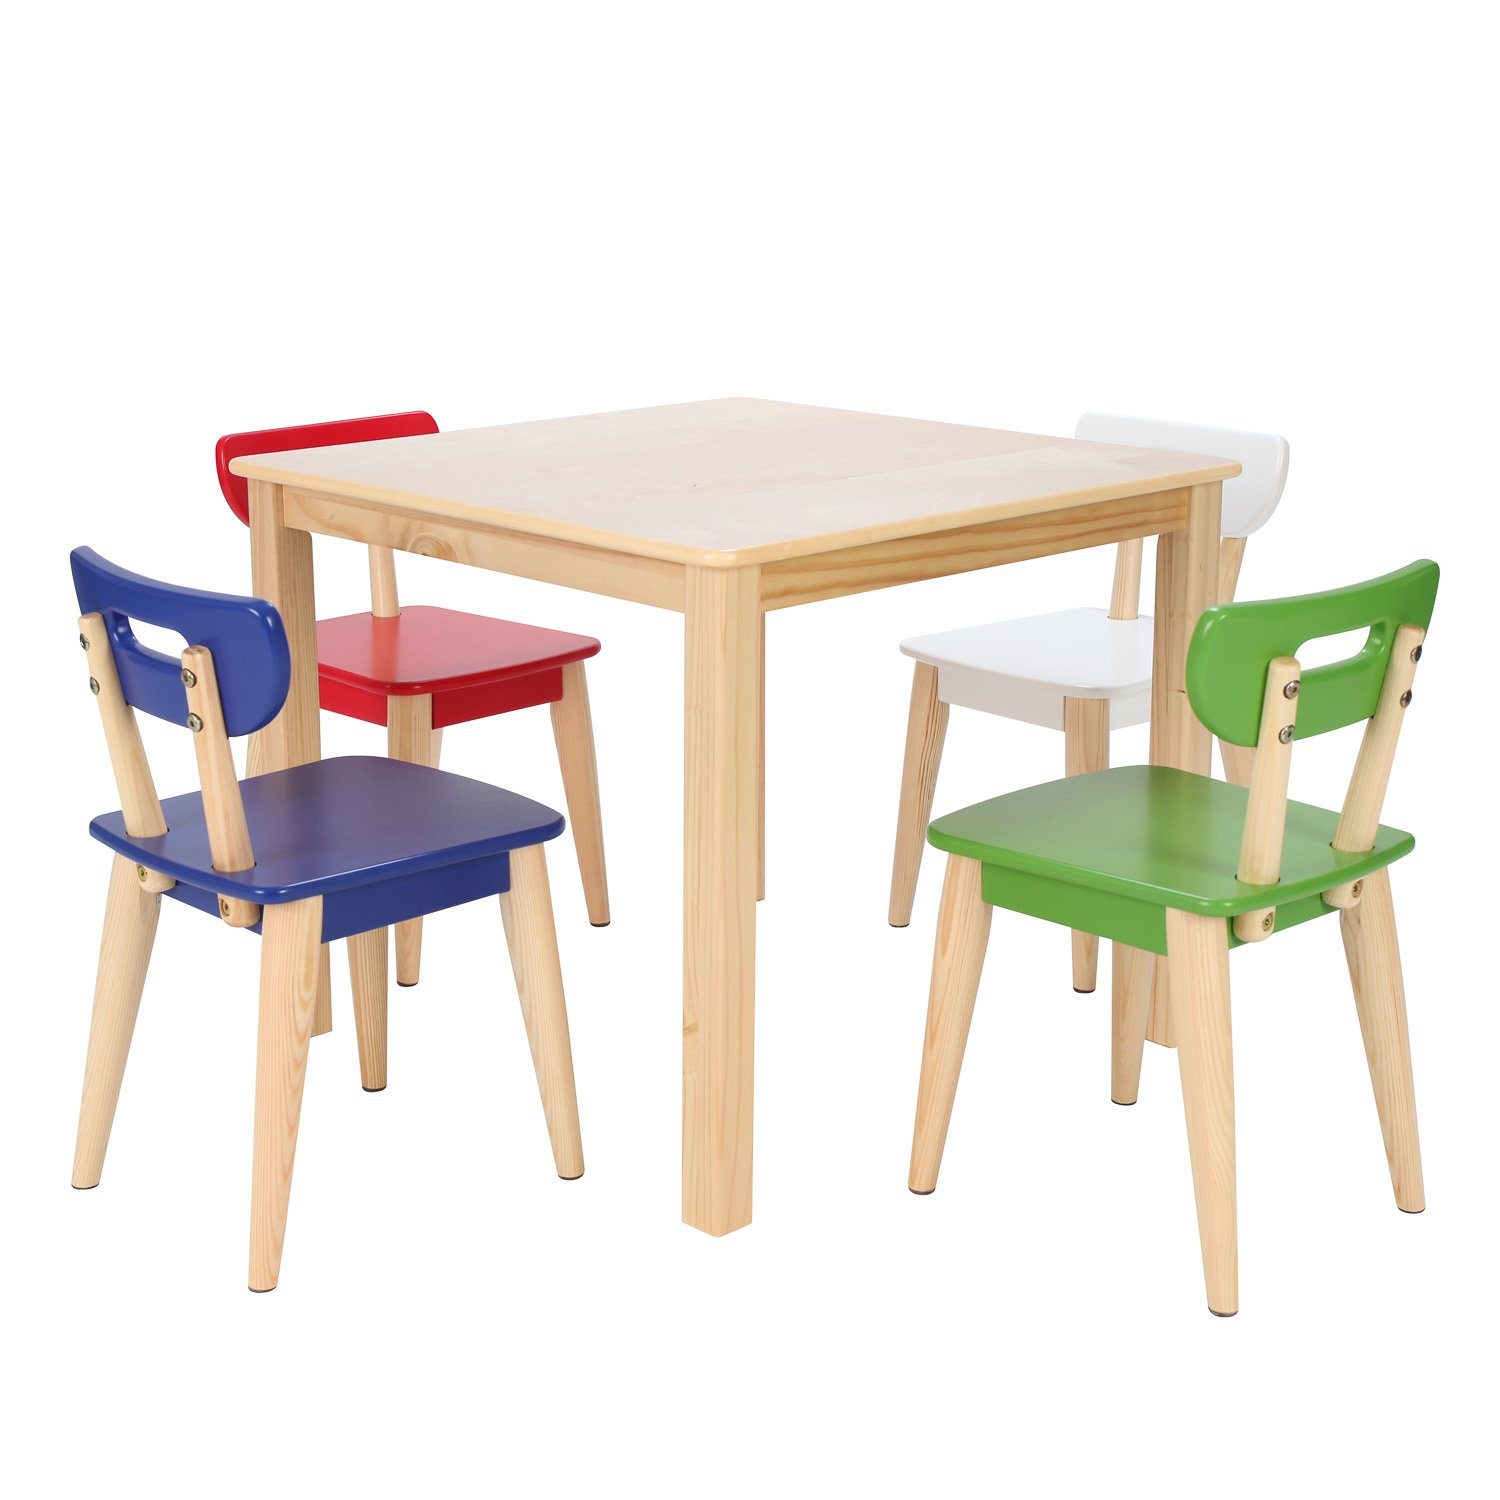 Max & Lily Natural Wood Kid and Toddler Square Table +  Modern Chairs (Blue, Red, Green, White) by Max & Lily